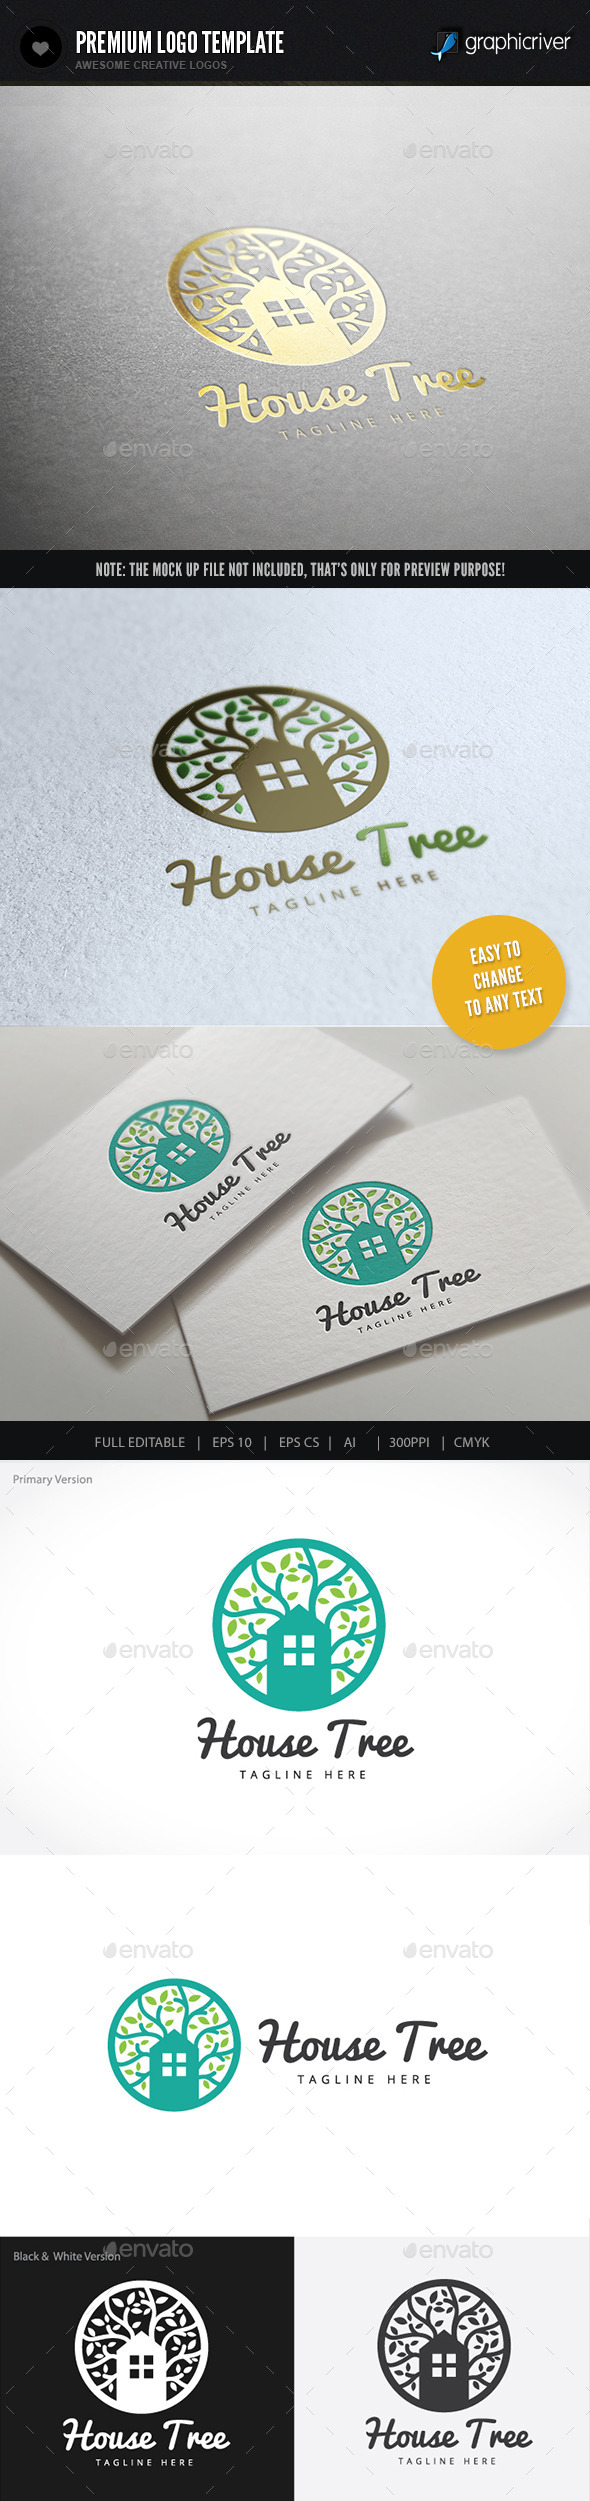 House Tree - Buildings Logo Templates